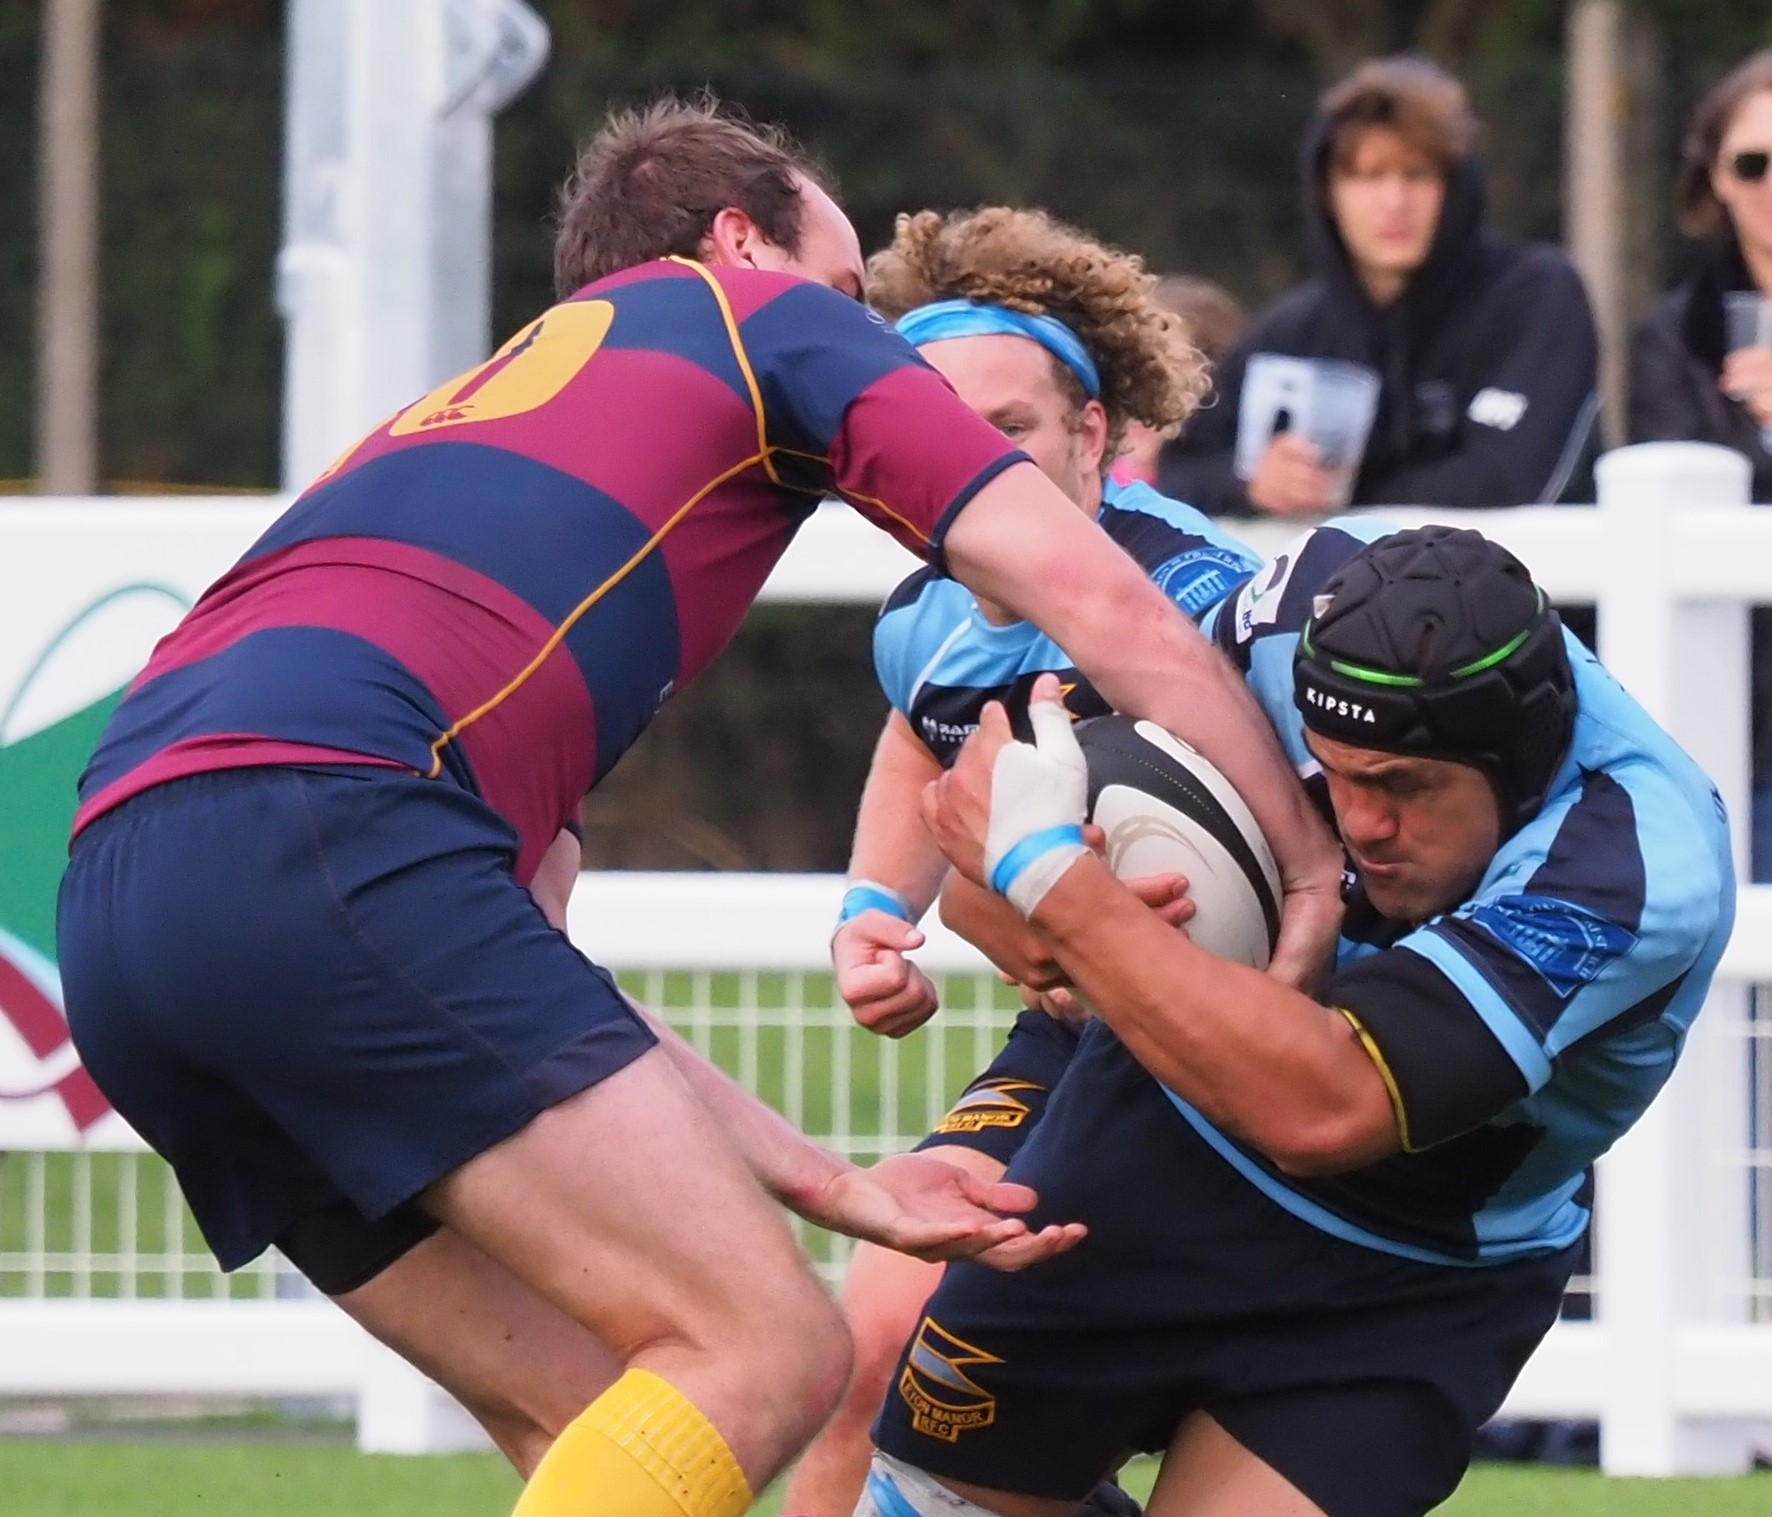 Eton Manor had victory snatched away from them by H.A.C at the weekend. Picture: Martin Pearl